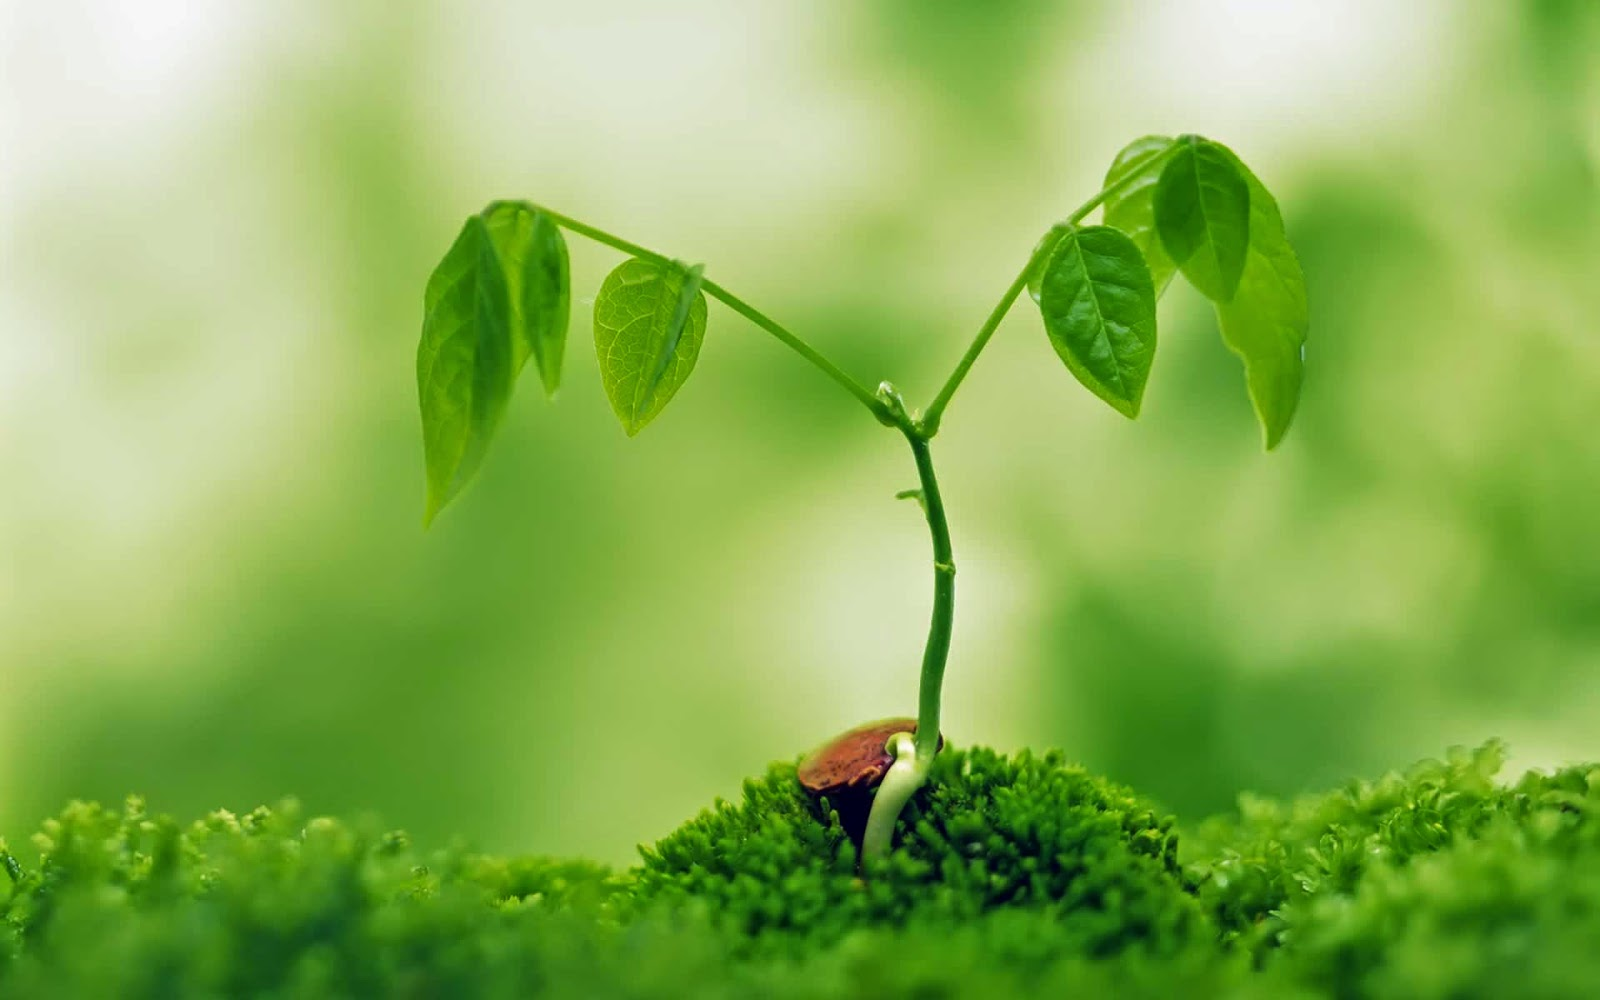 plant wallpapers nature tree plants desktop natural growing computer planting flowers growth garden seed plantas non herbal natura grow leafs